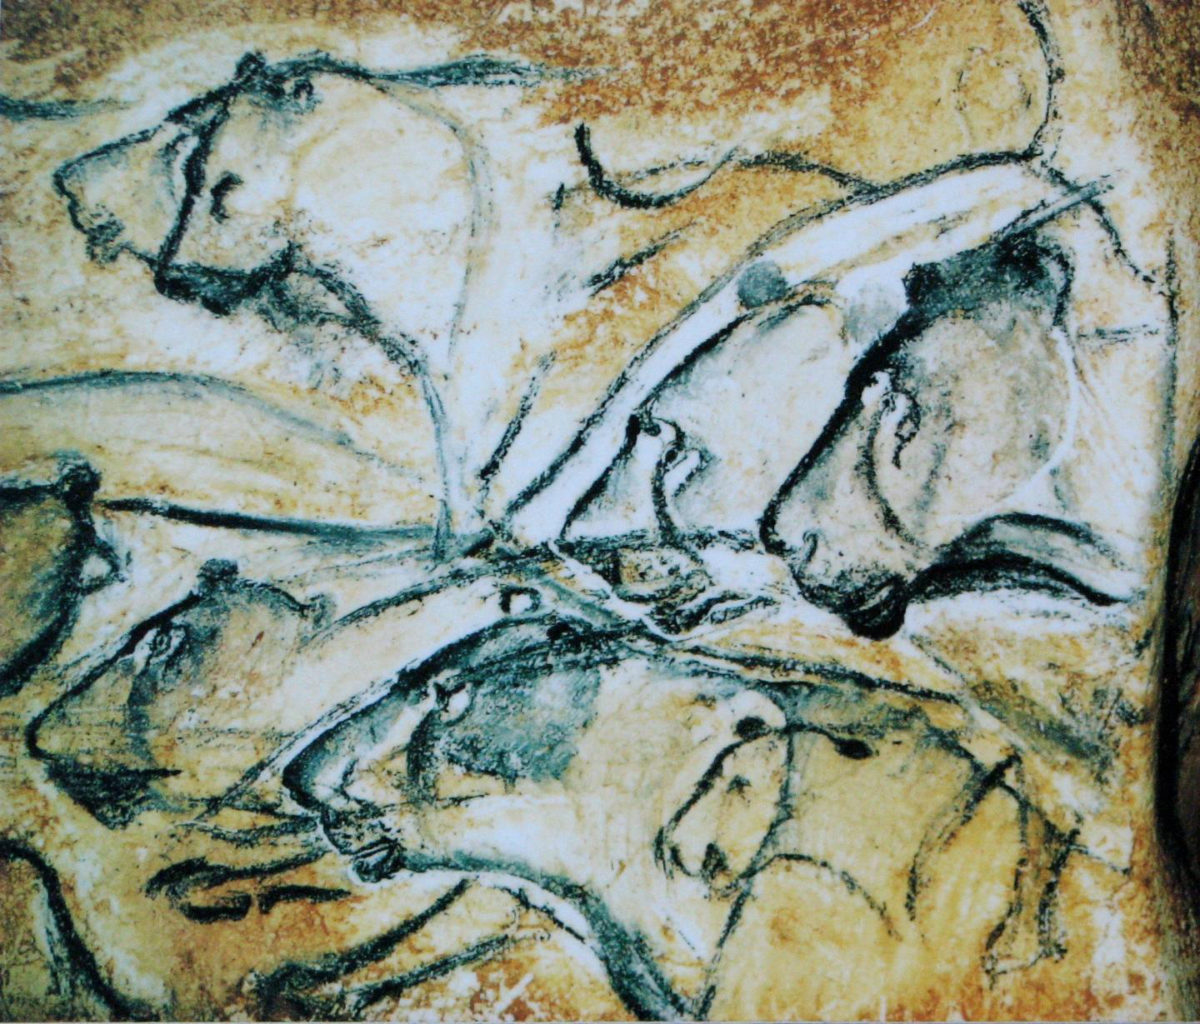 Replica of drawing of lions painted in the Chauvet Cave. Art in the cave has been identified as created by early modern humans.